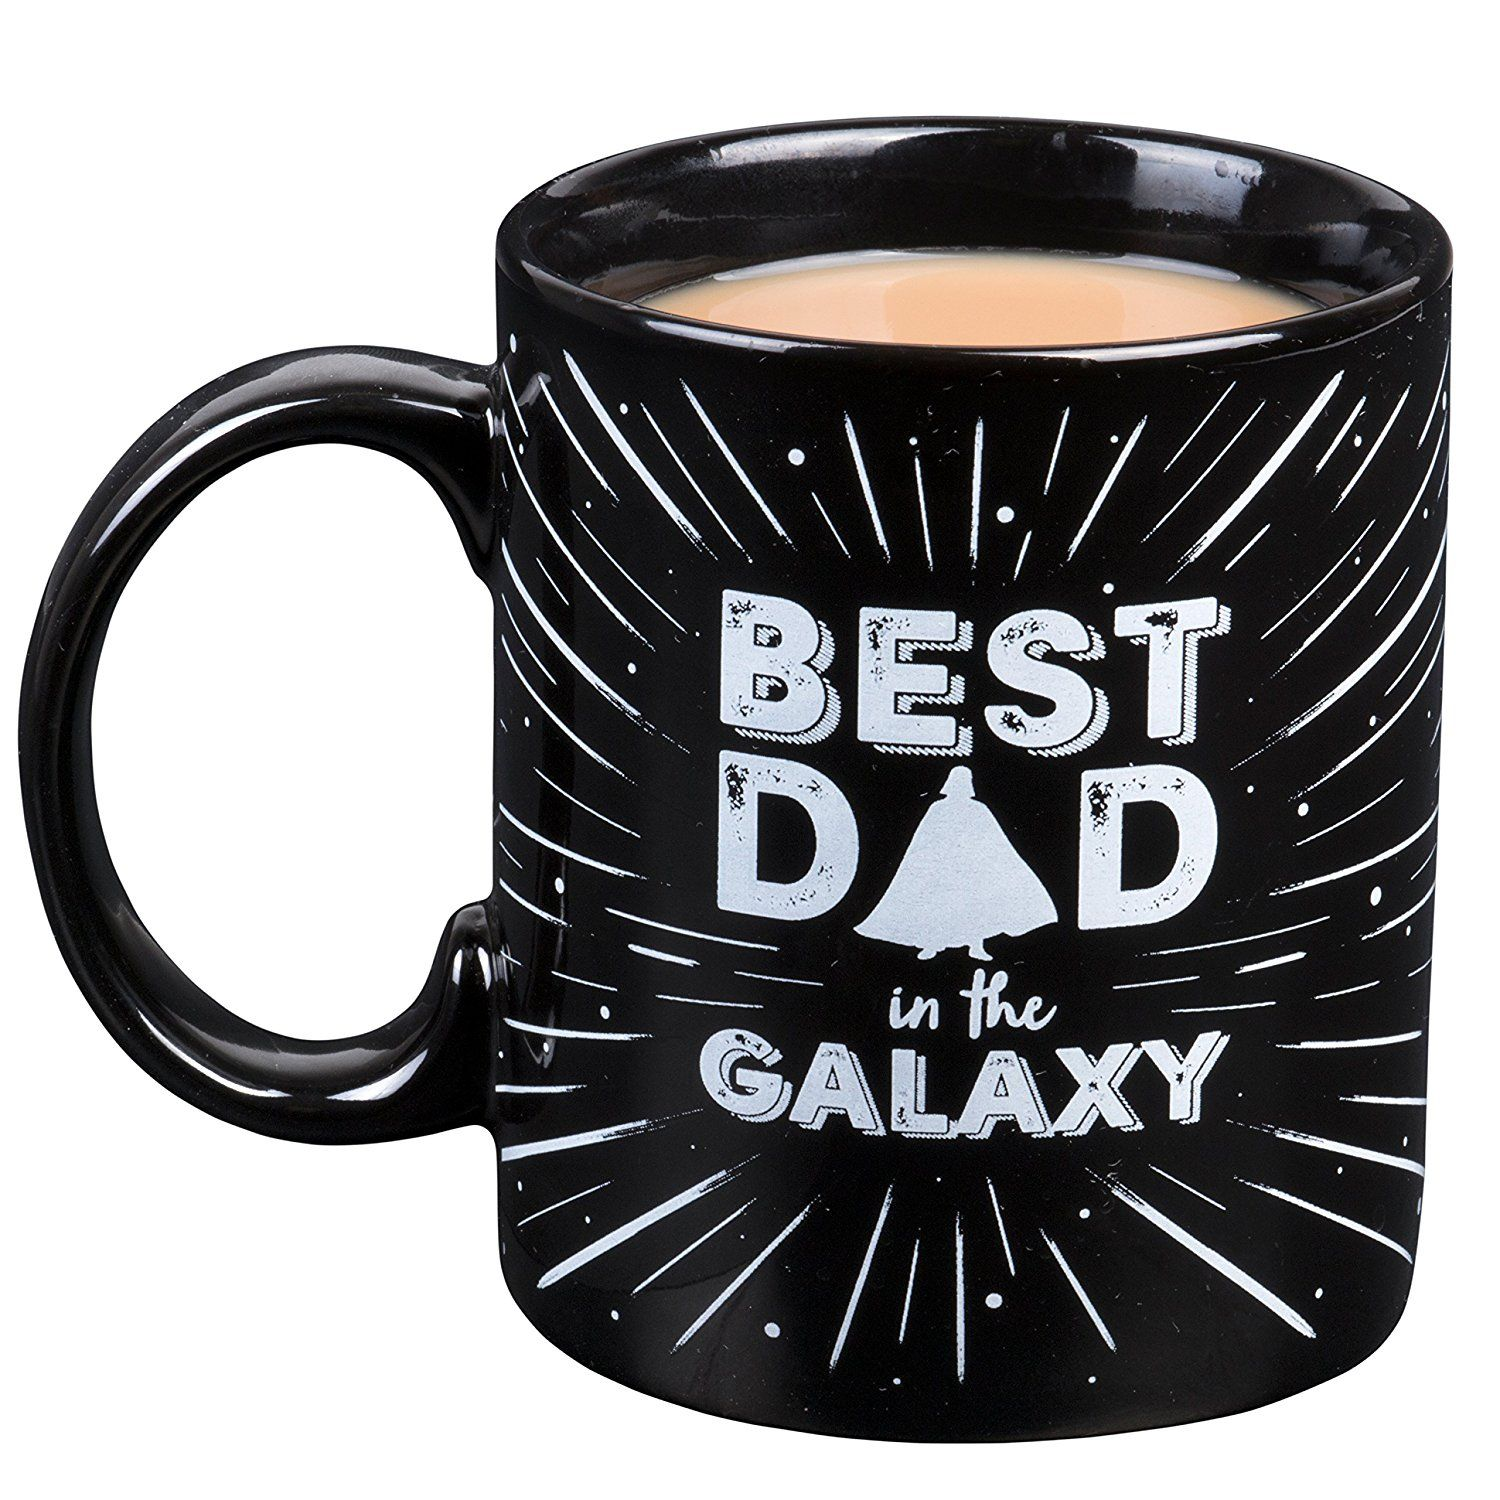 amazon father's day gift cards